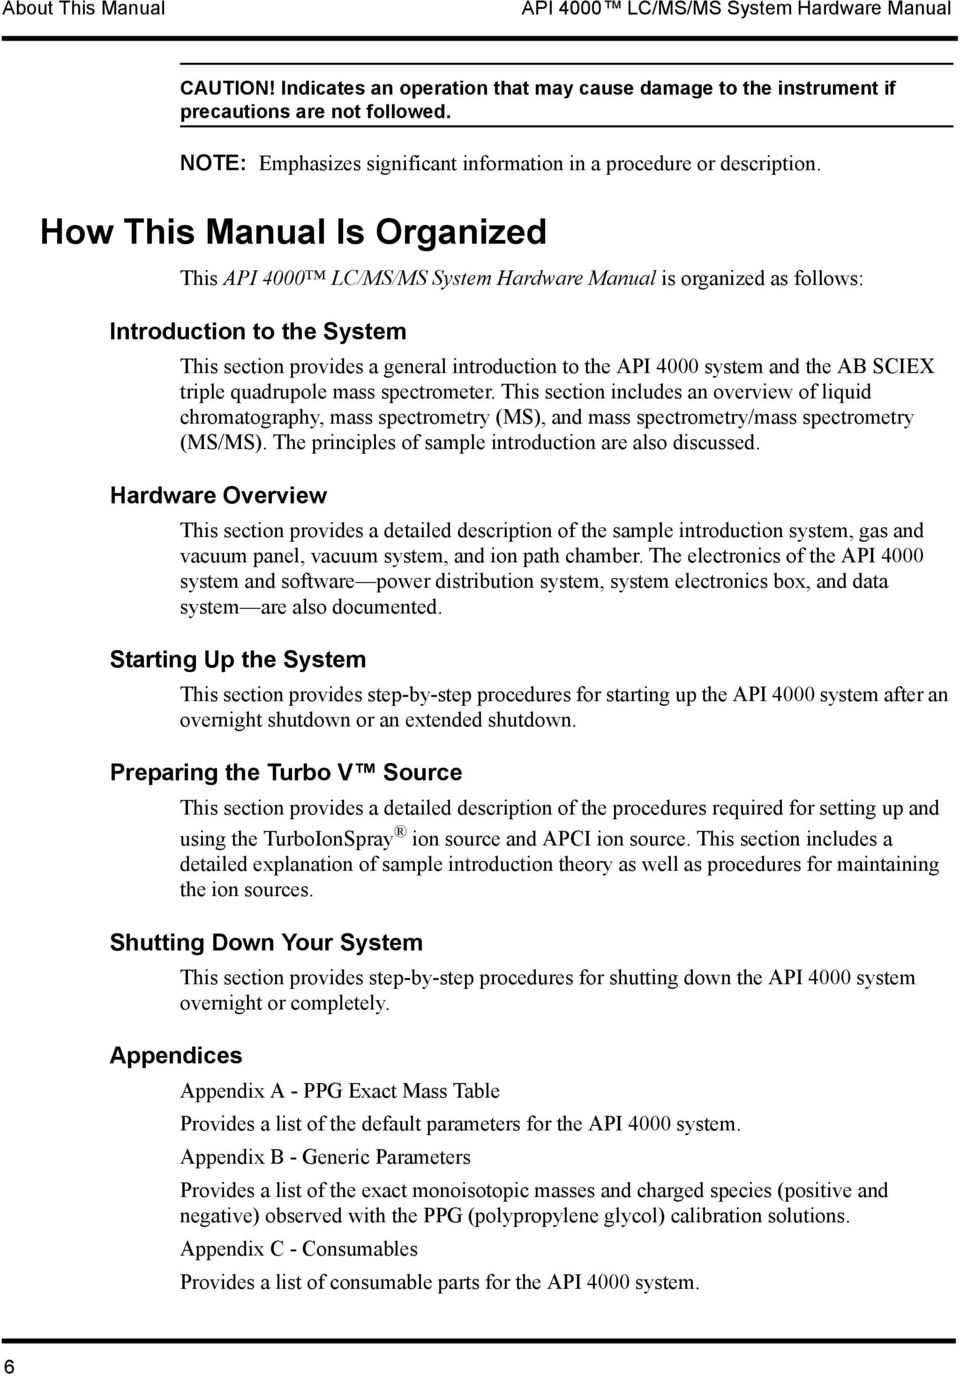 How This Manual Is Organized This API 4000 LC/MS/MS System Hardware Manual is organized as follows: Introduction to the System This section provides a general introduction to the API 4000 system and